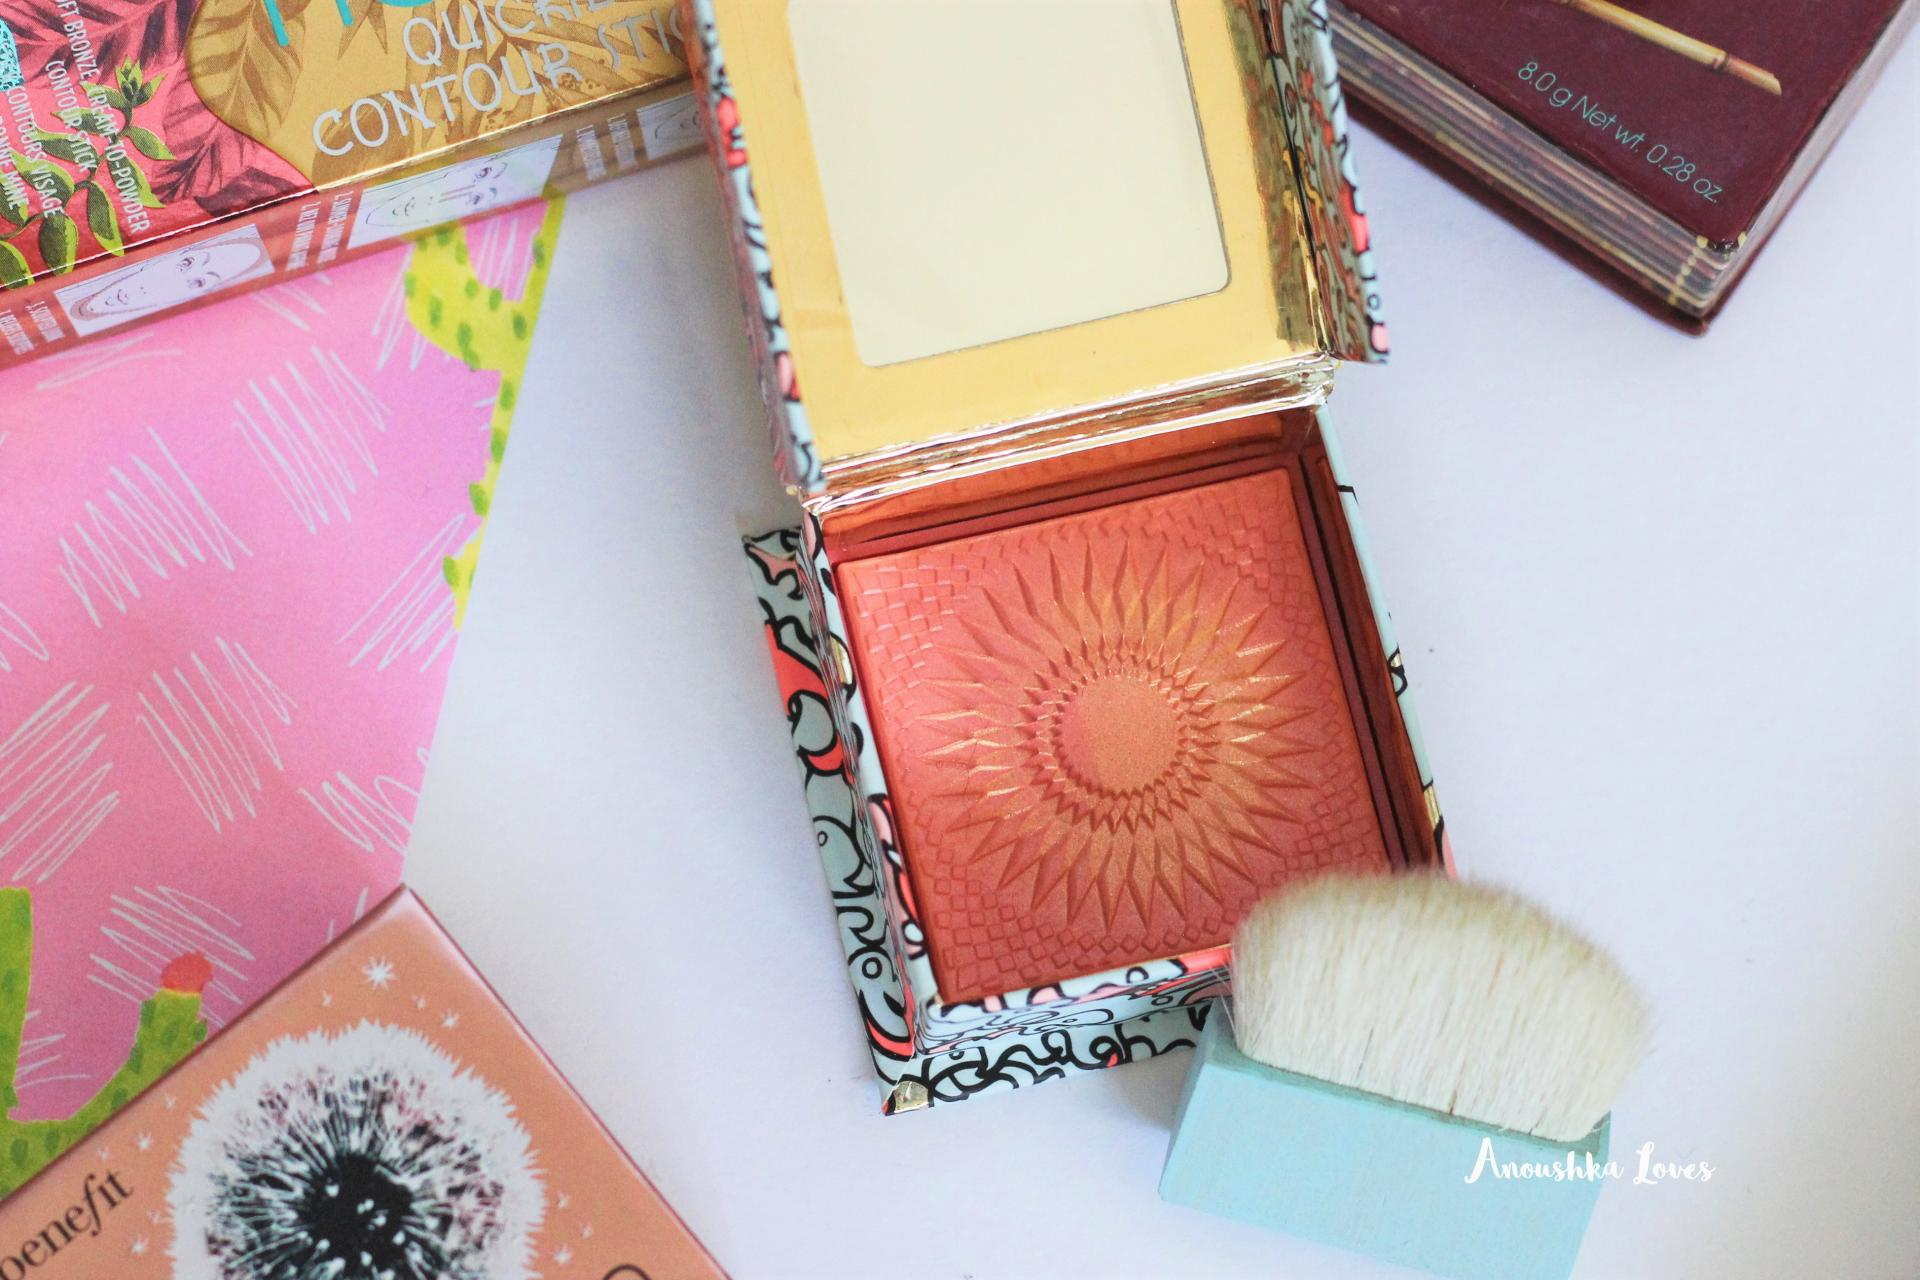 The Summer Face with Benefit Cosmetics Galifornia Blusher